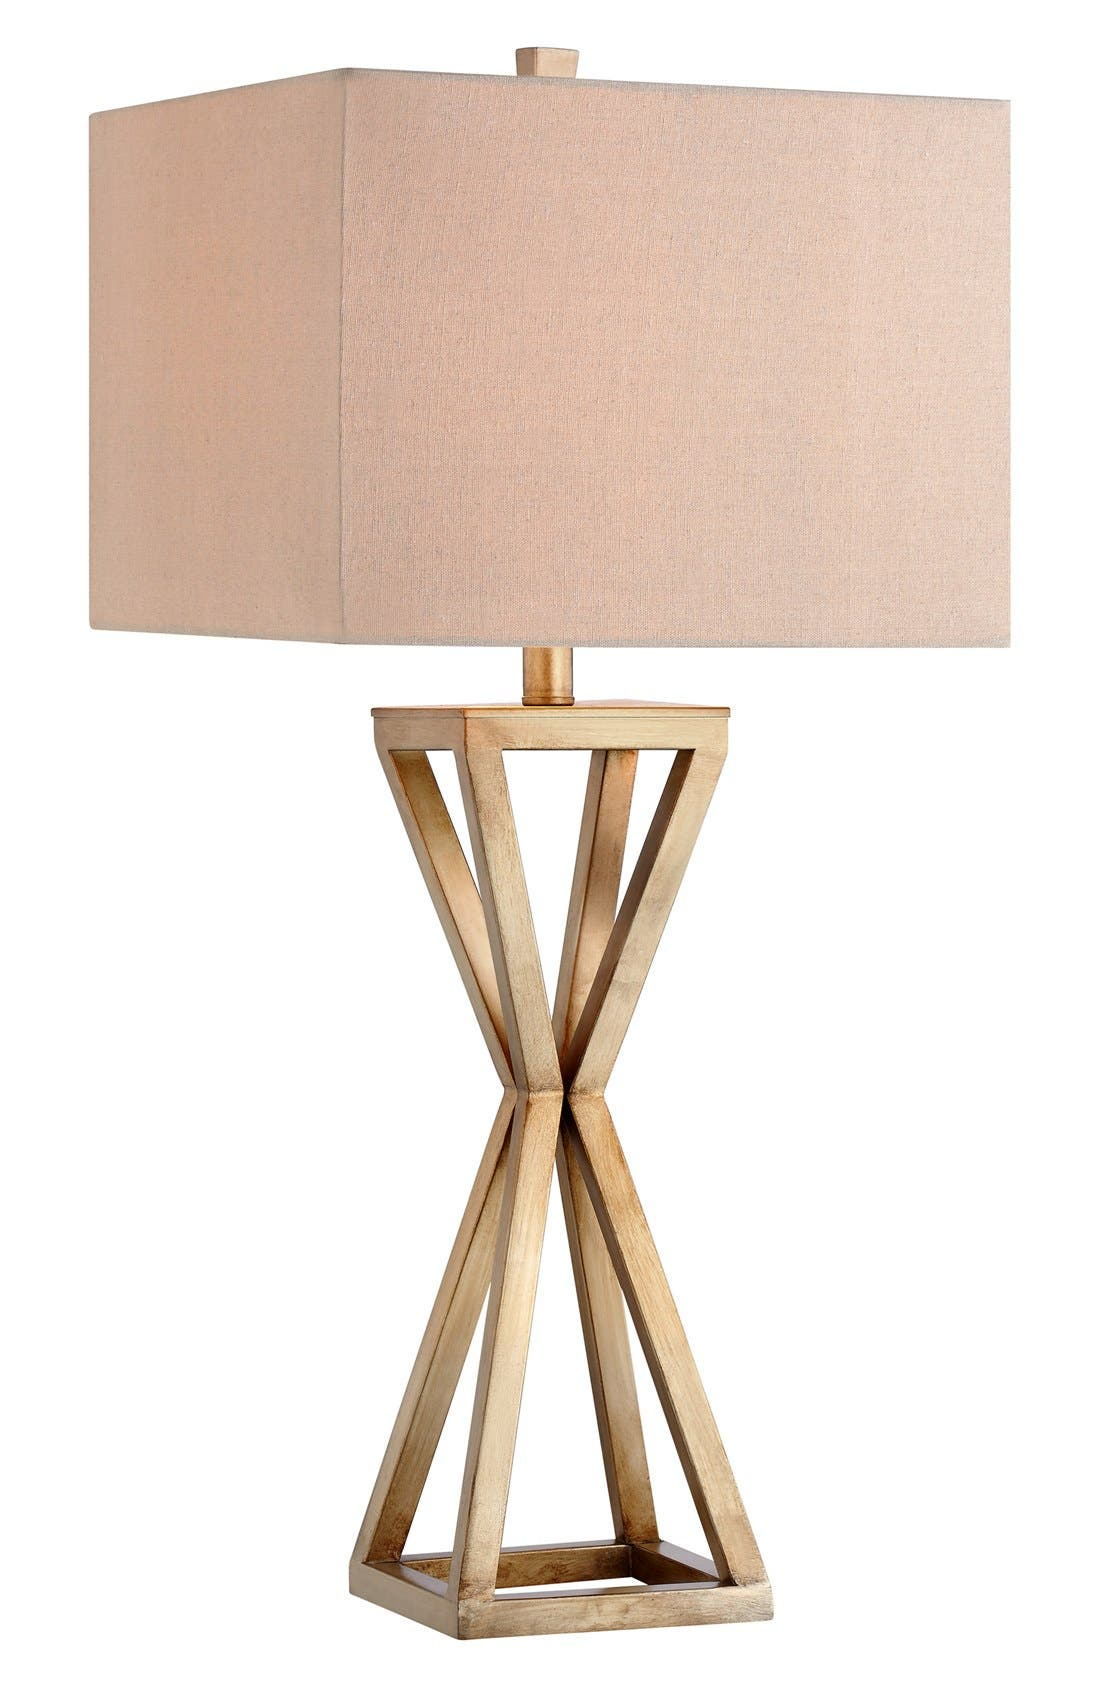 JALEXANDER LIGHTING Open Caged Metal Table Lamp